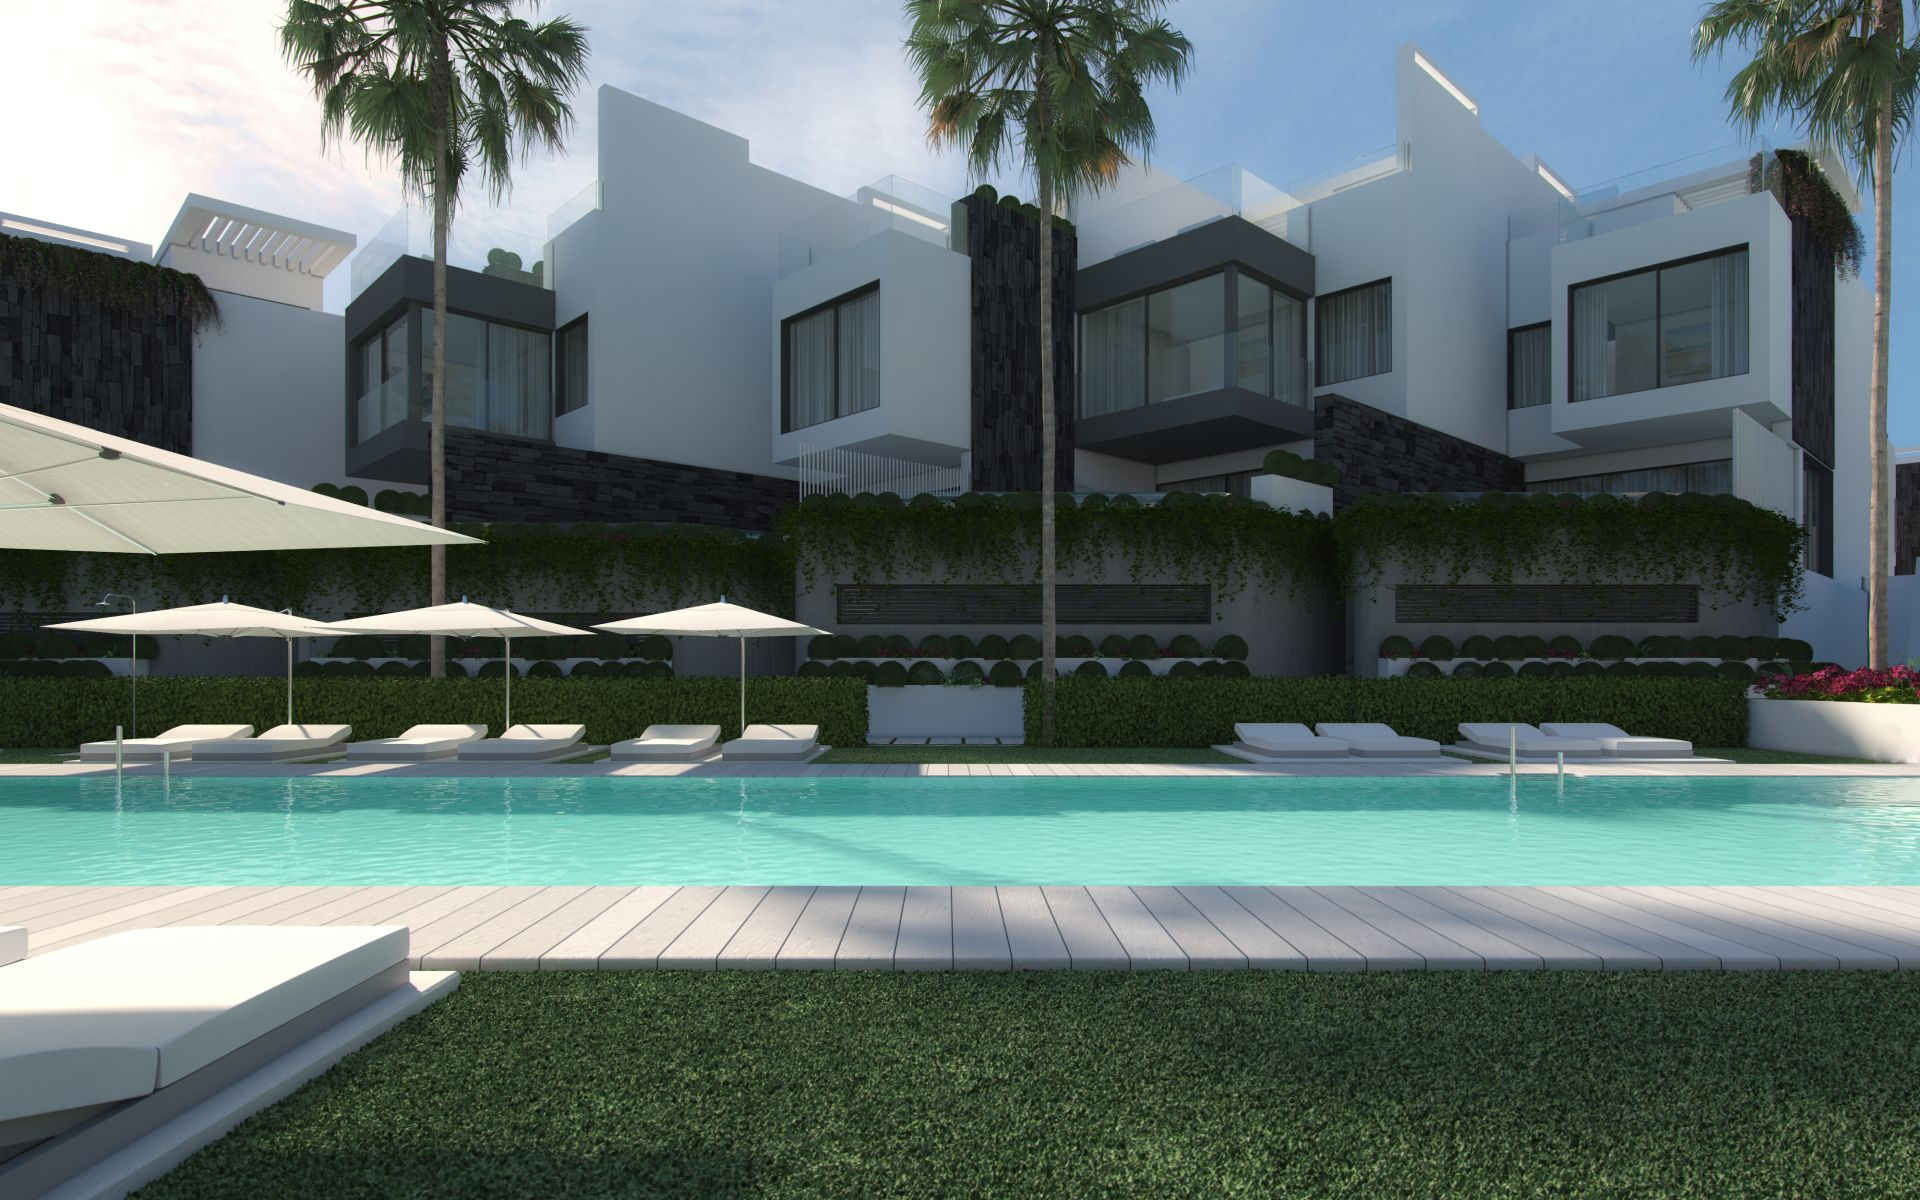 State-of-the-art townhouses for sale in Estepona